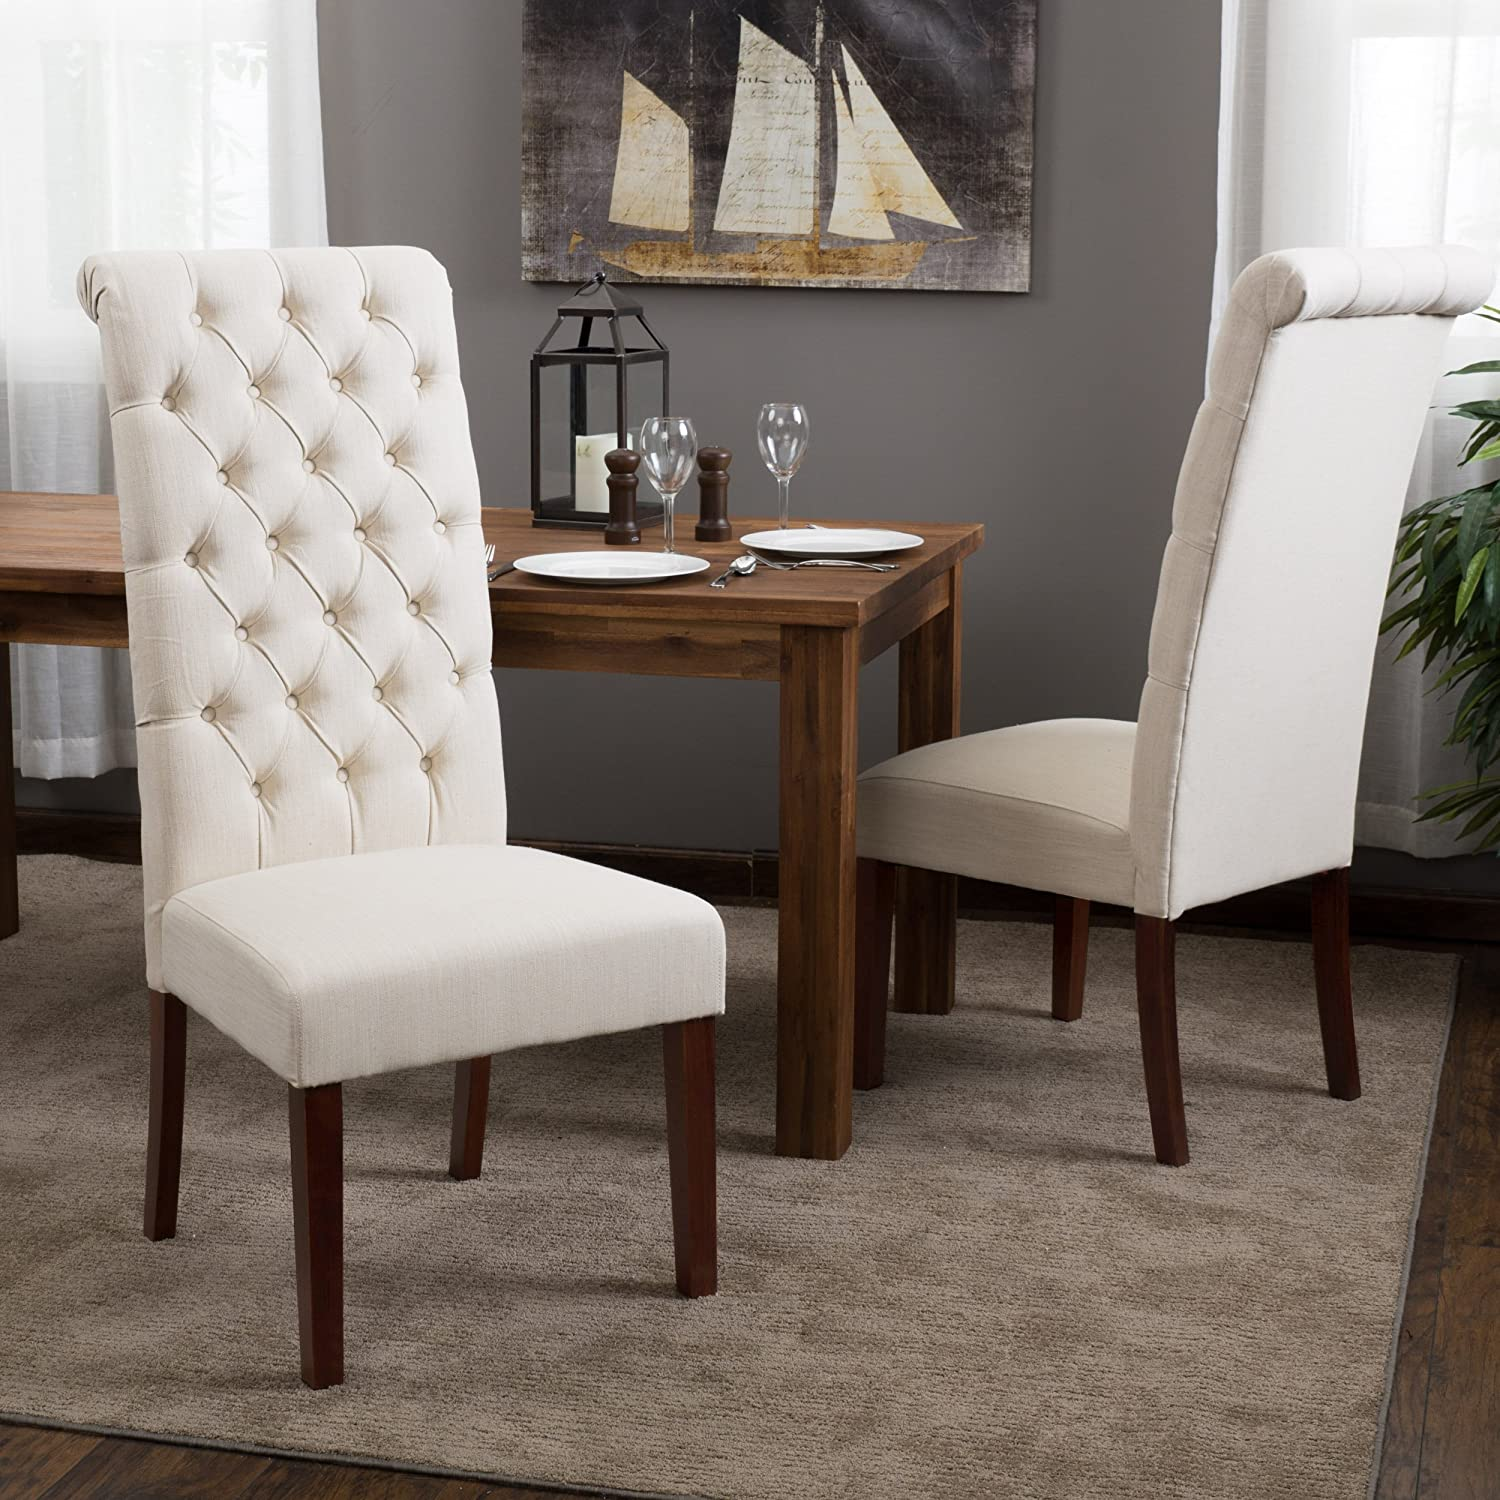 tufted dining bench with back amazoncom best selling natural tall tufted dining chair 2 pack chairs